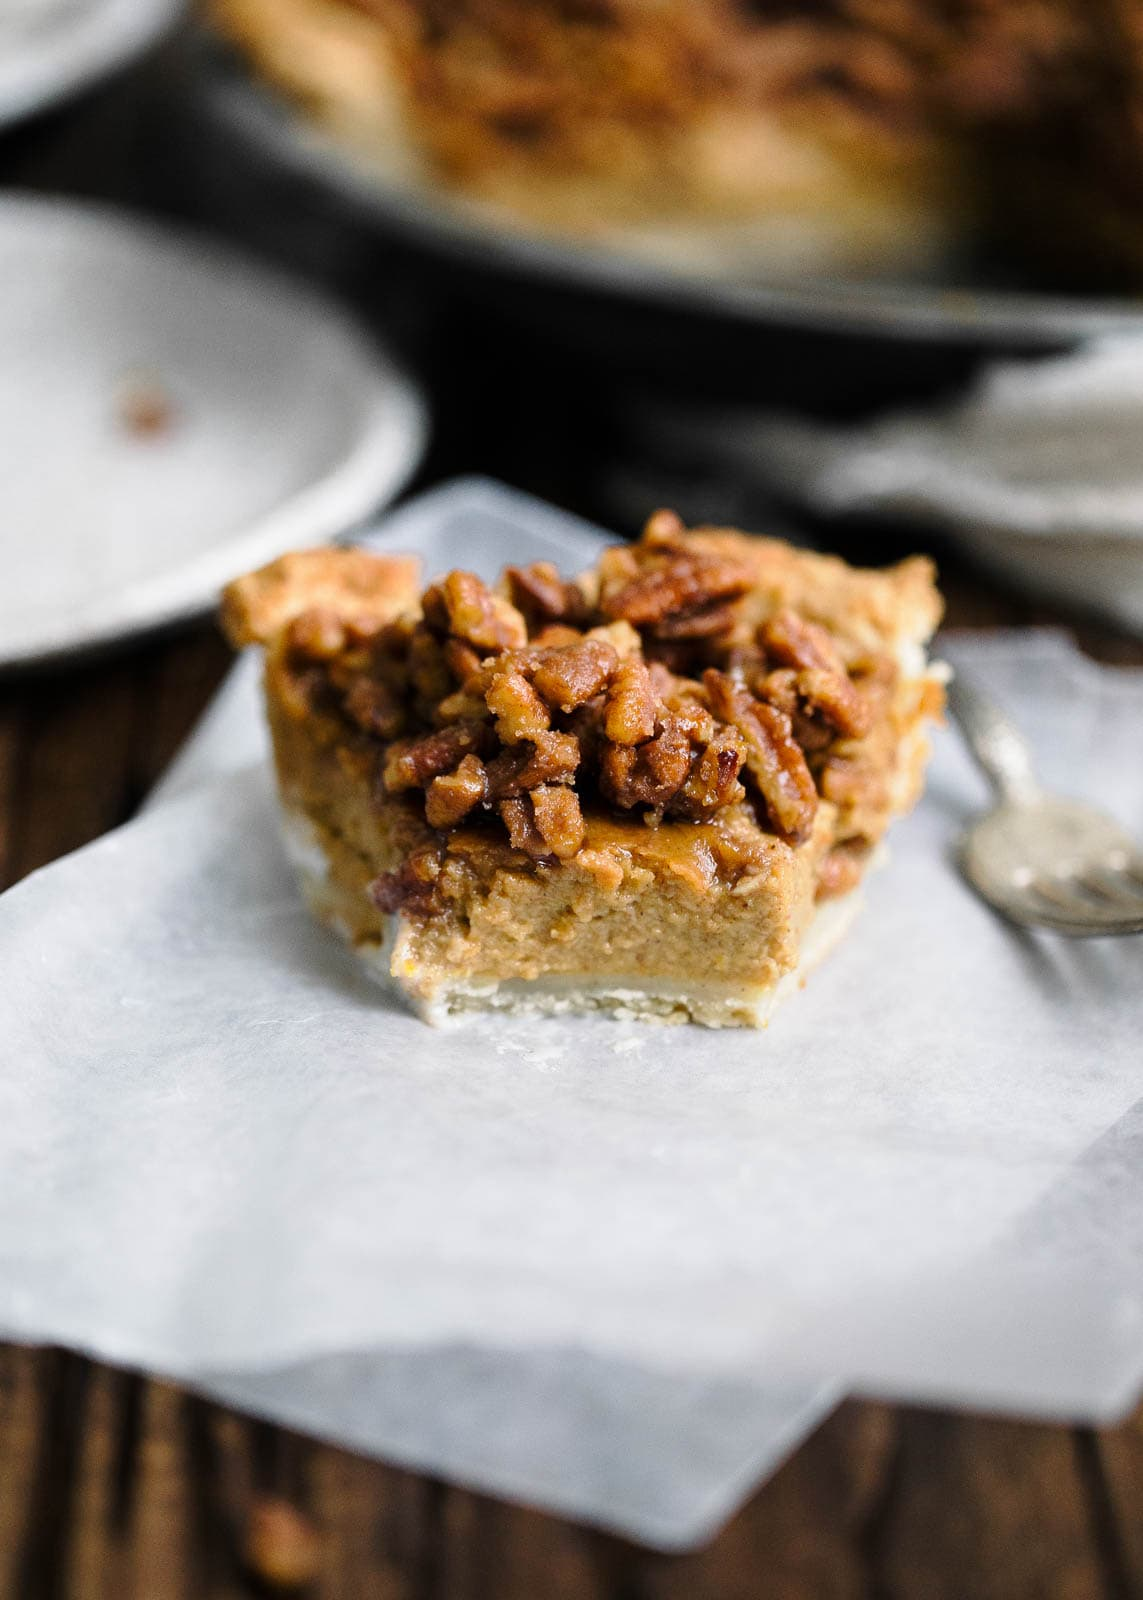 Maple Pecan Bourbon Pumpkin Pie slice on paper towel